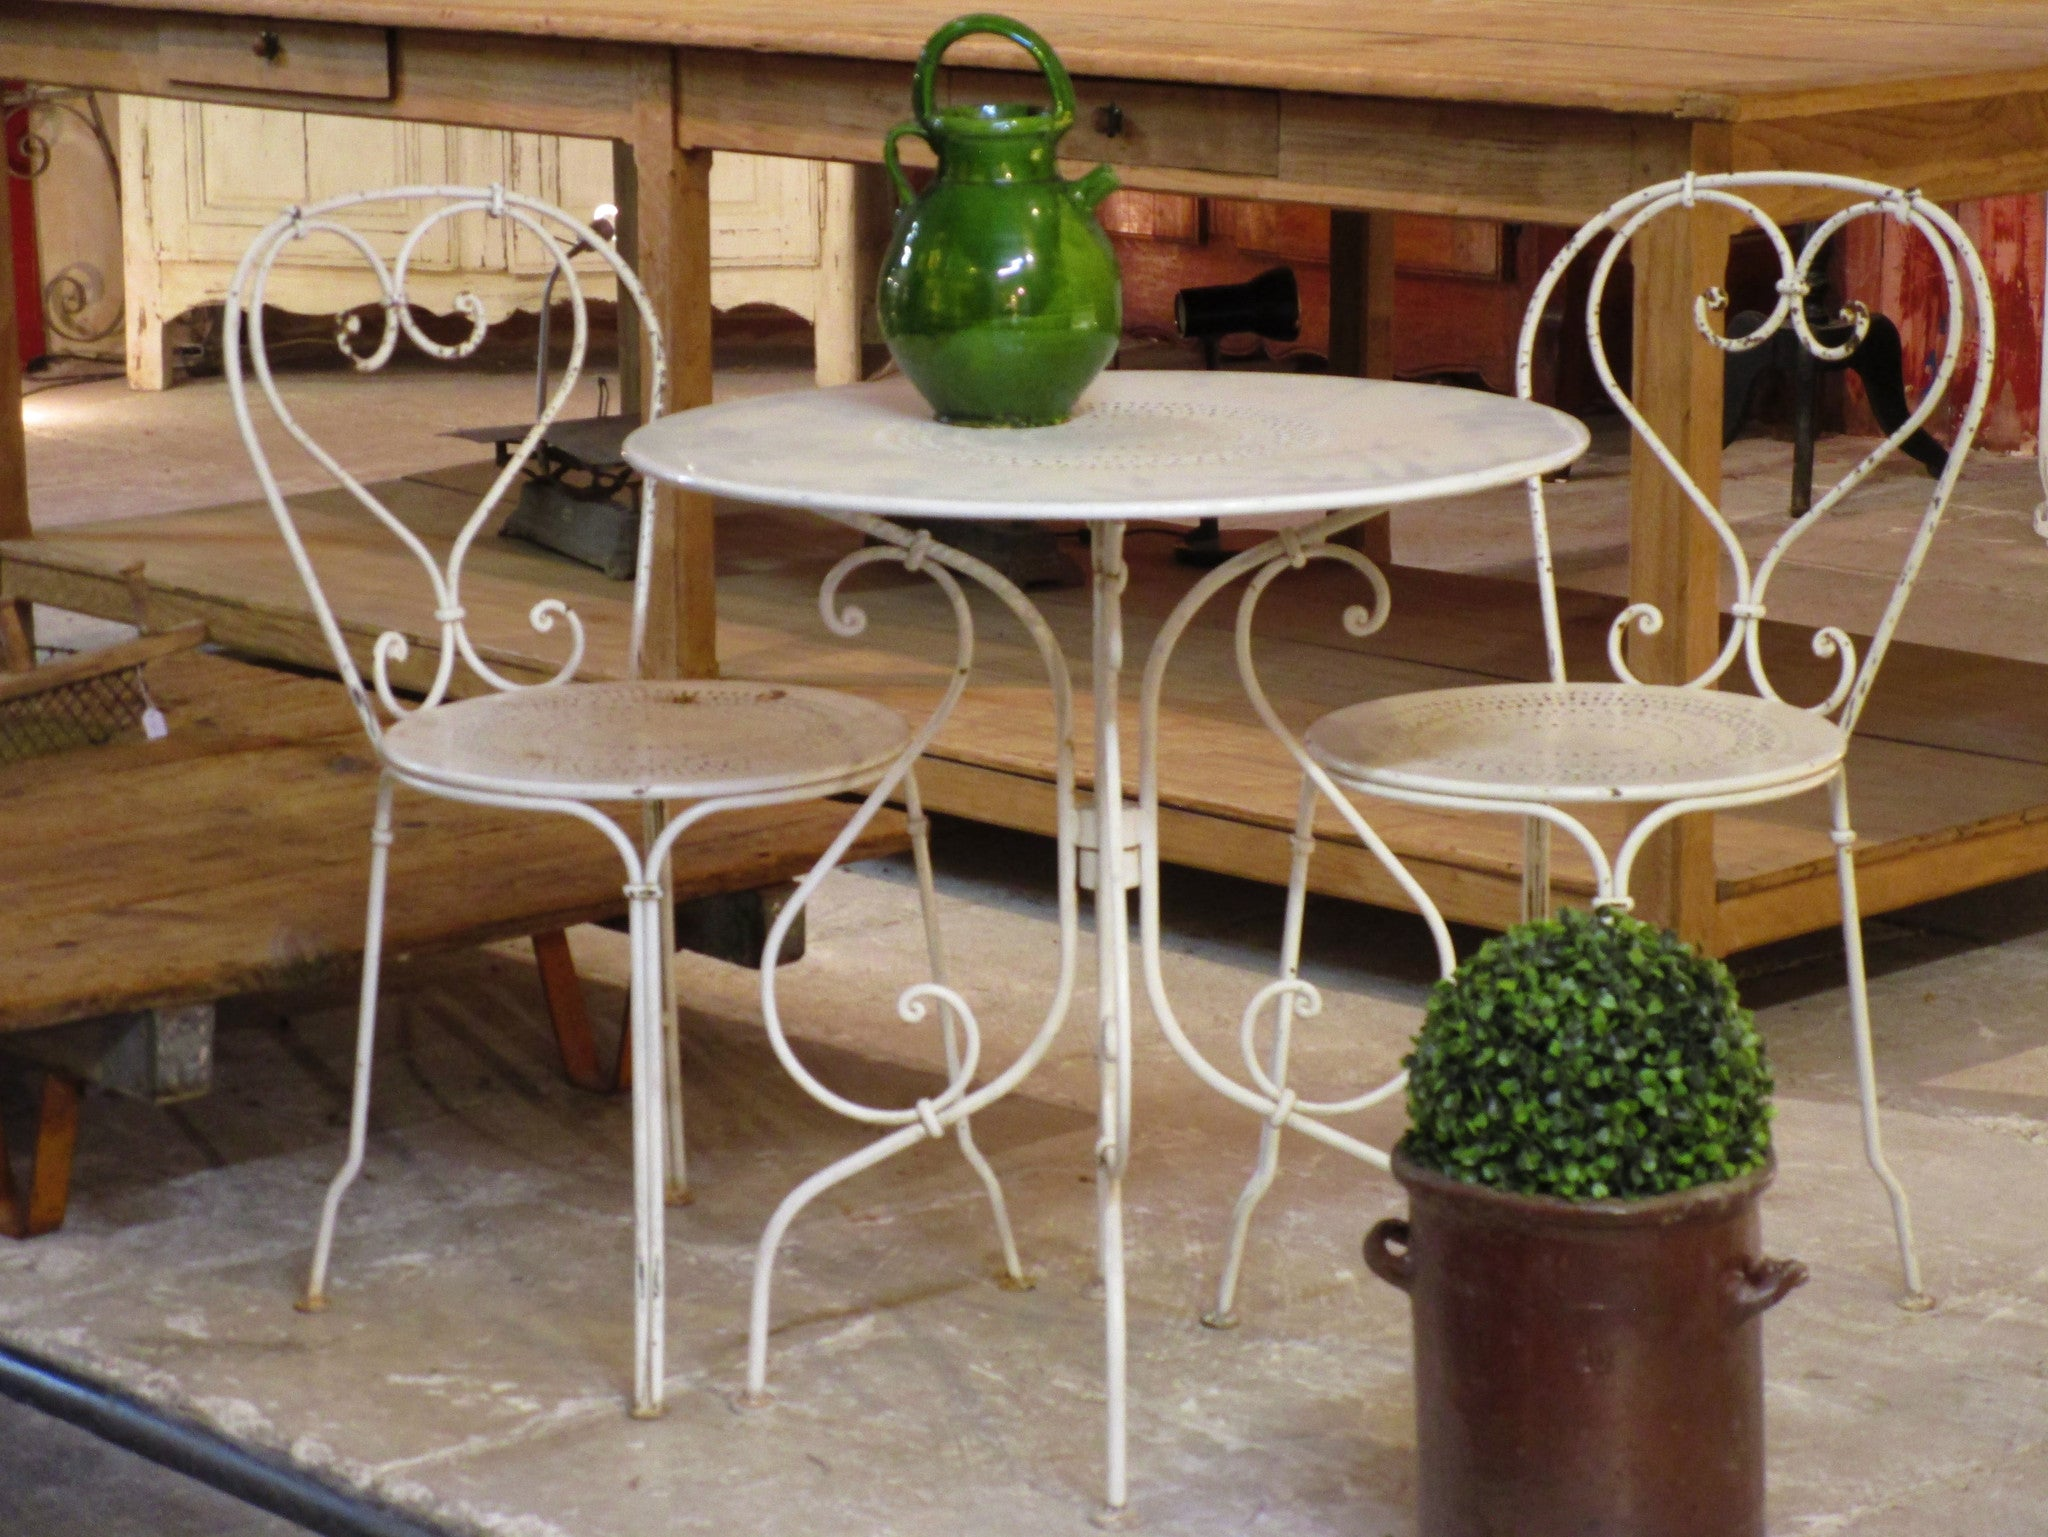 Vintage French outdoor table setting - white